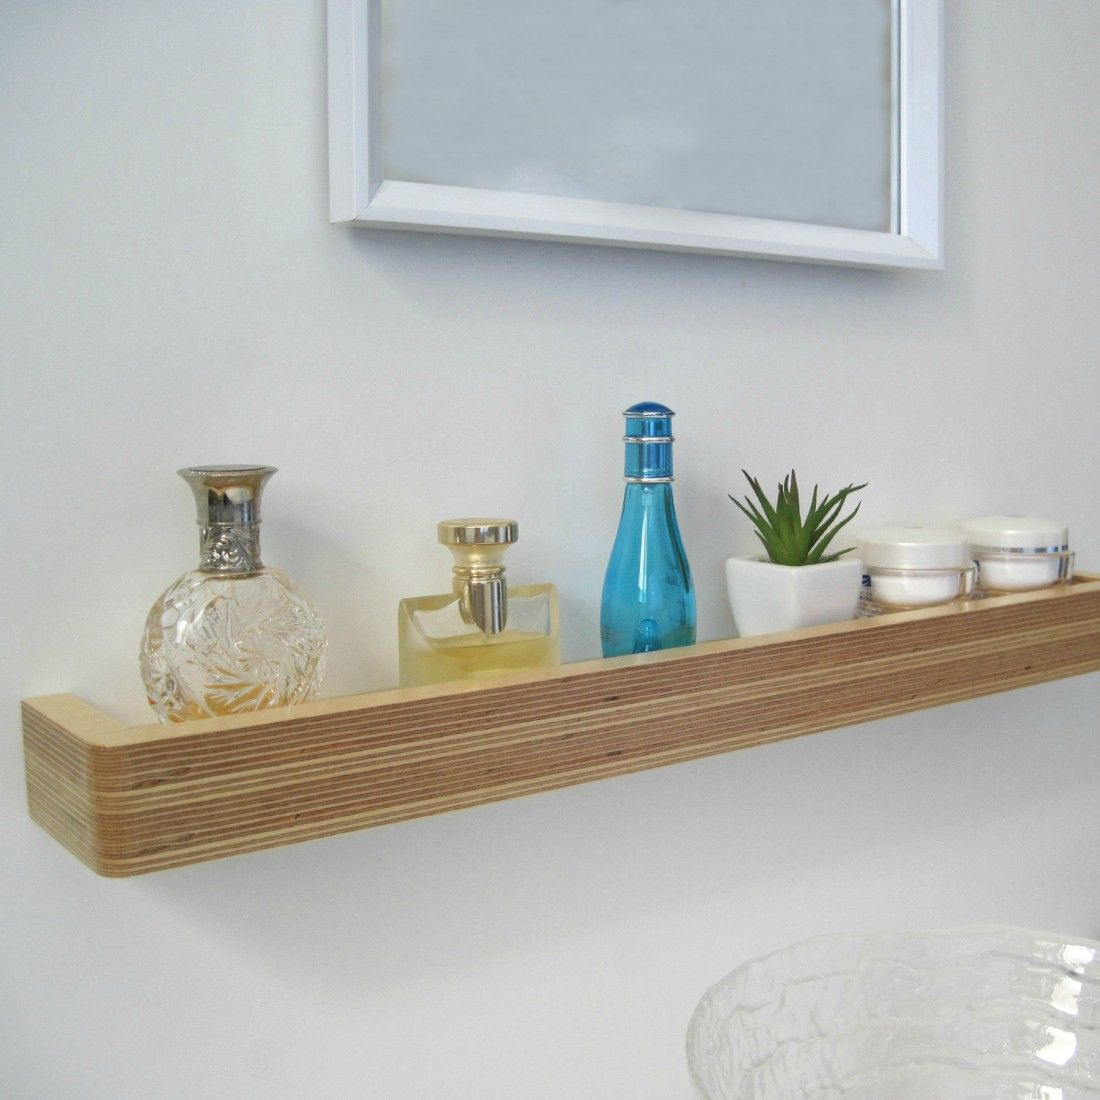 Floating Shelves With Lip Captivating Slimline Floating Shelf  Birch Ply Birch And Shelves Inspiration Design